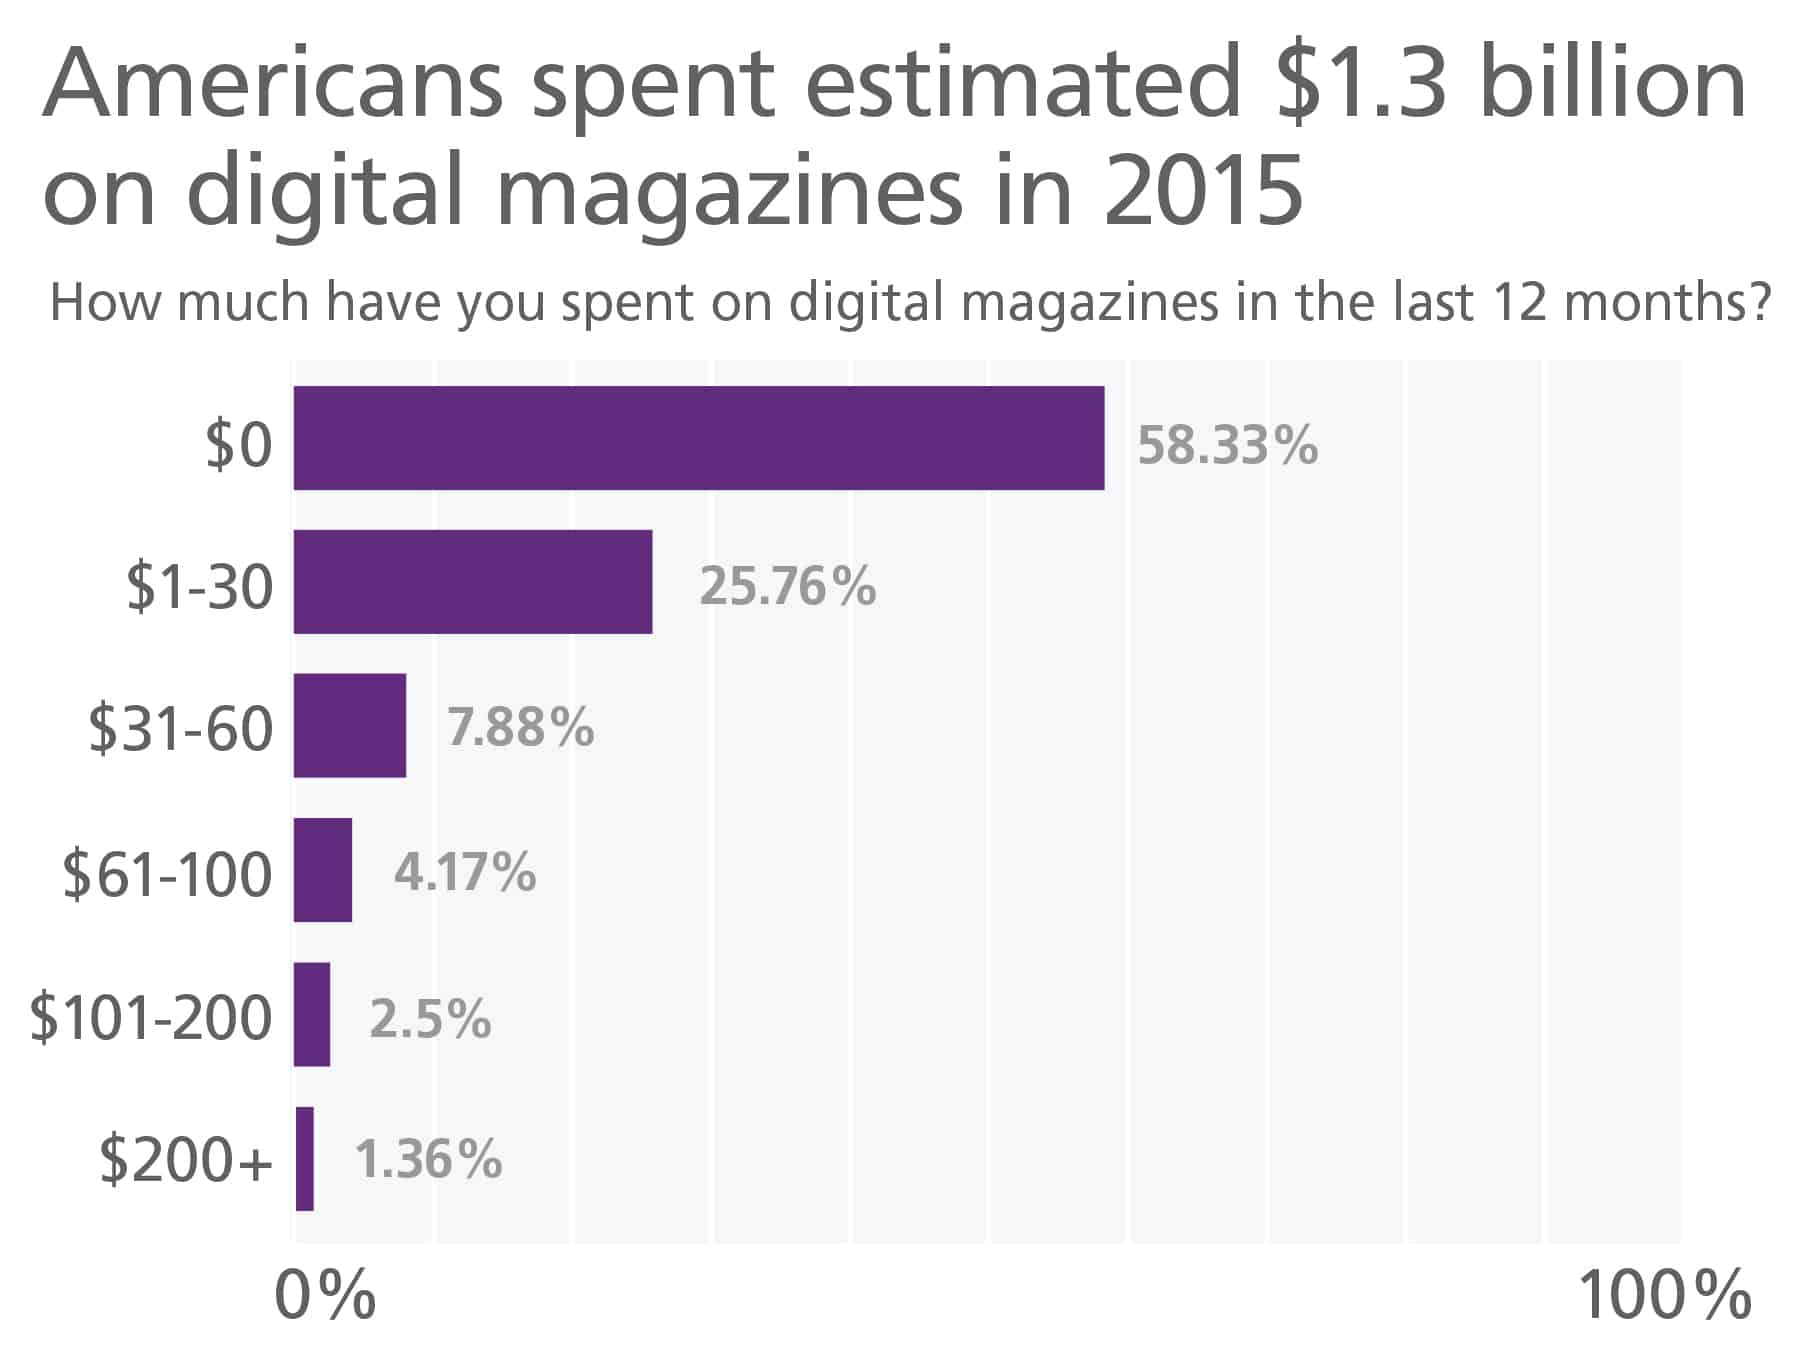 Dollars spent on digital magazines